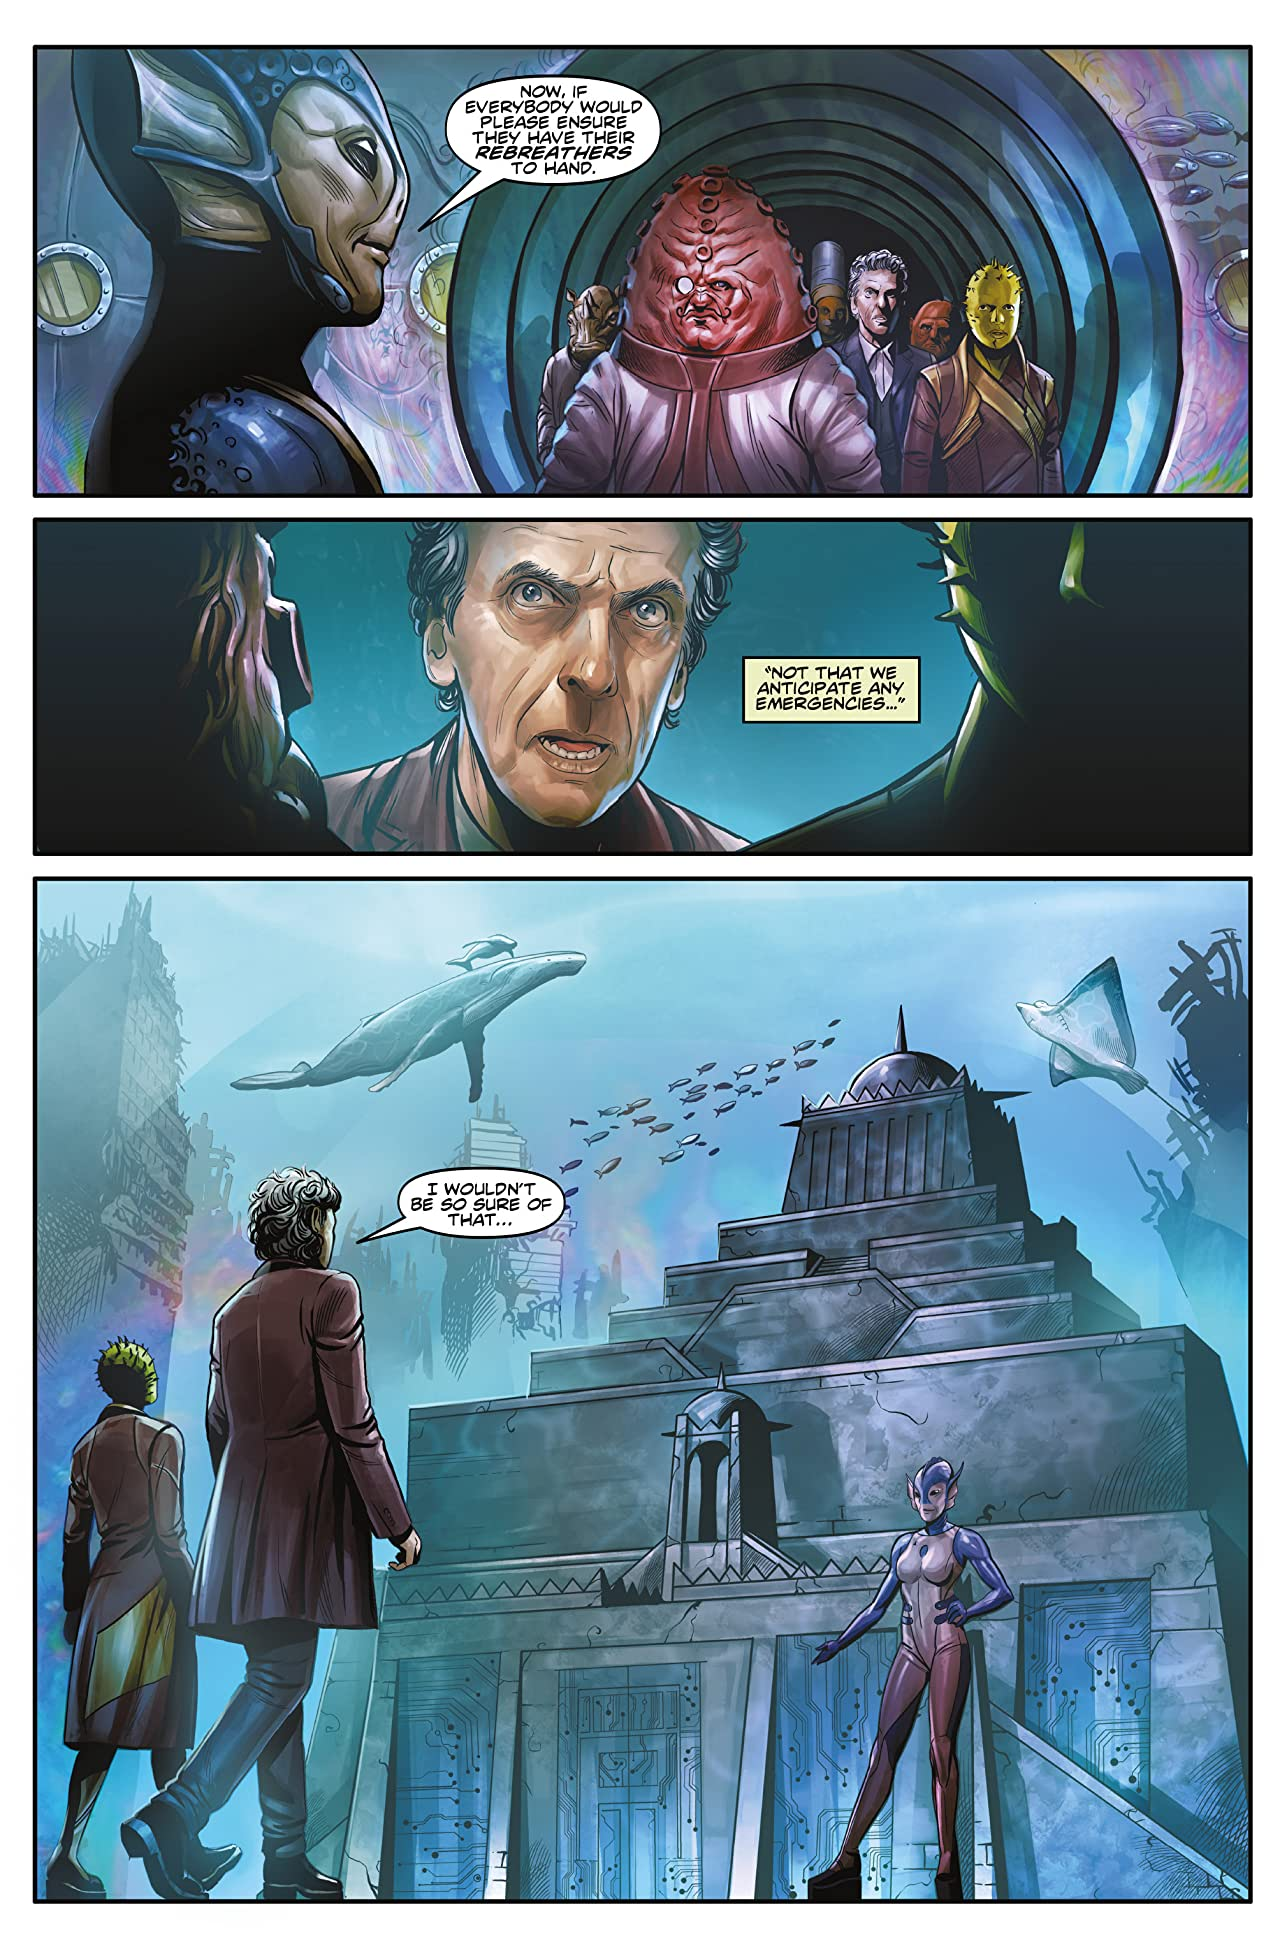 Doctor Who: The Twelfth Doctor #3.1